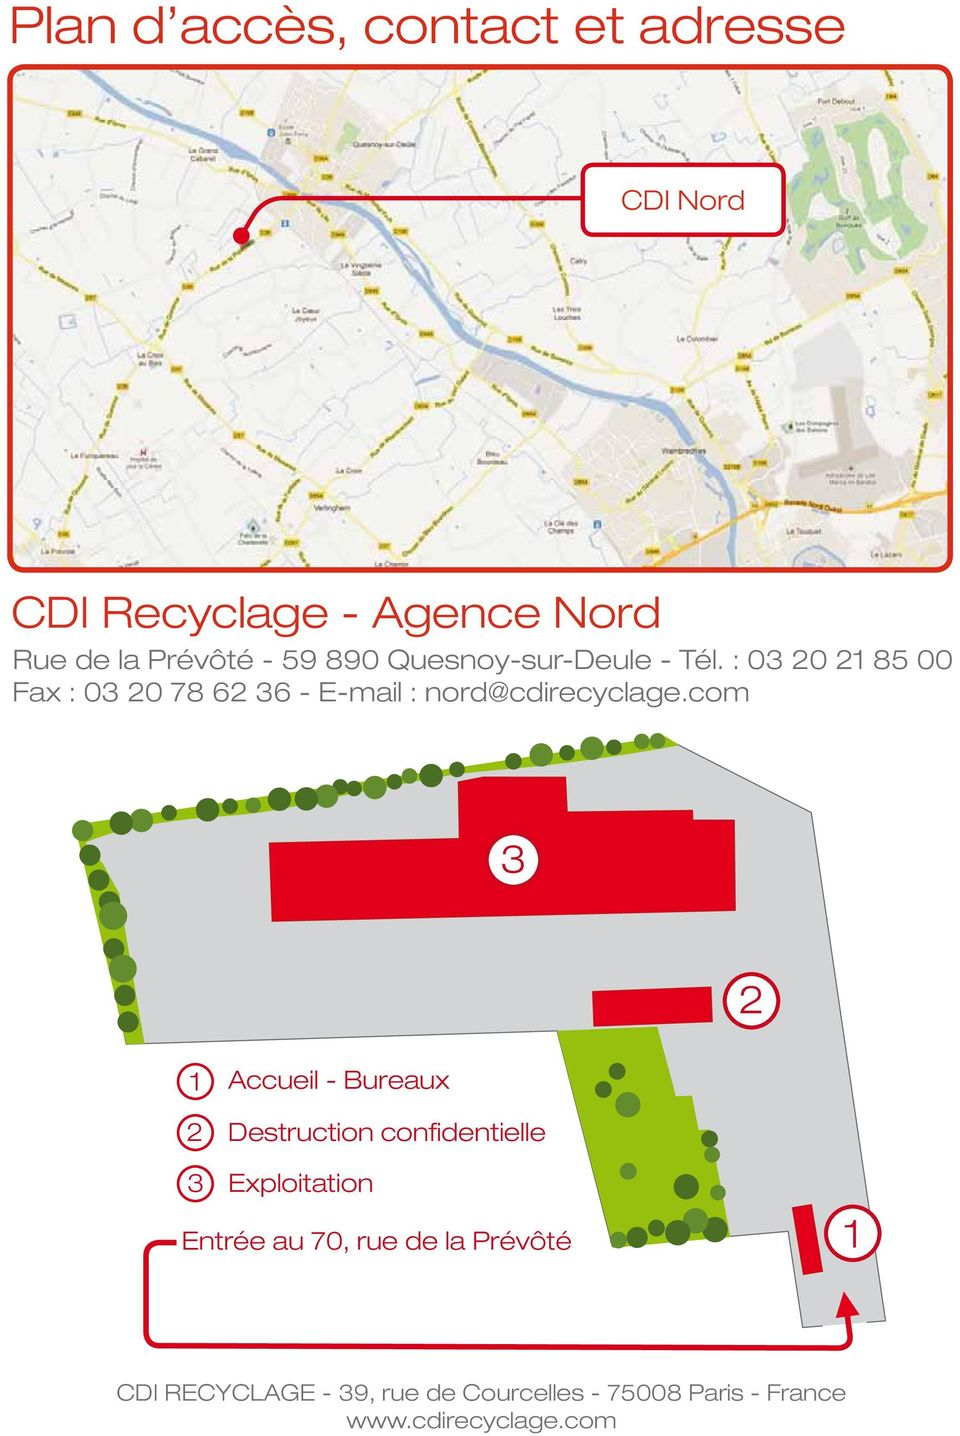 : 03 0 85 00 Fax : 03 0 78 6 36 - E-mail : nord@cdirecyclage.